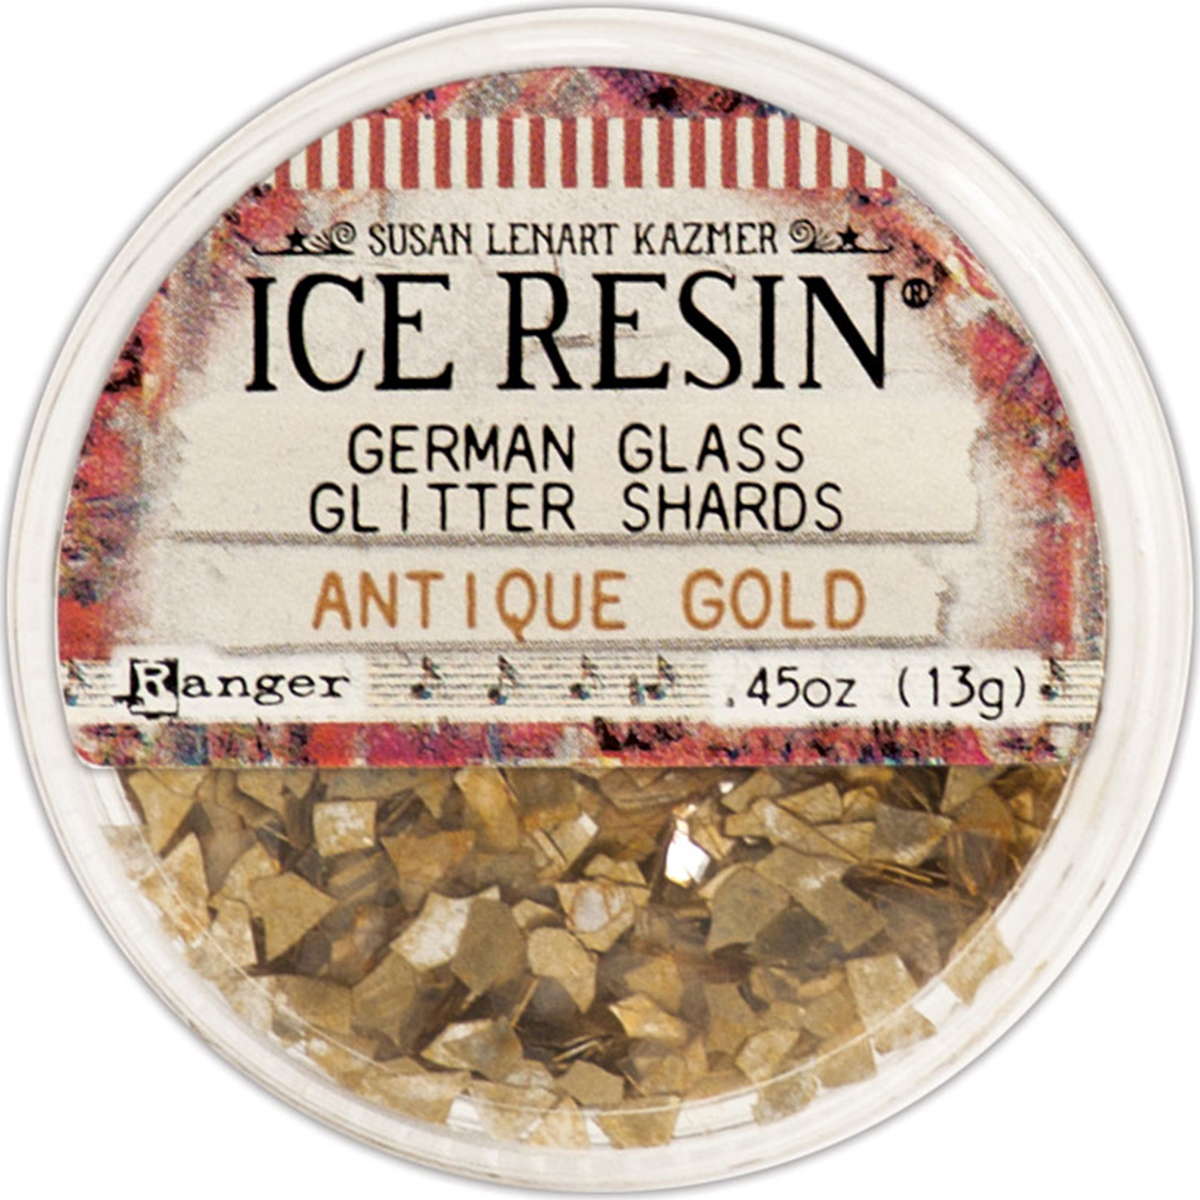 Ranger Ice Resin Glass Glitter Shards Antique Gold